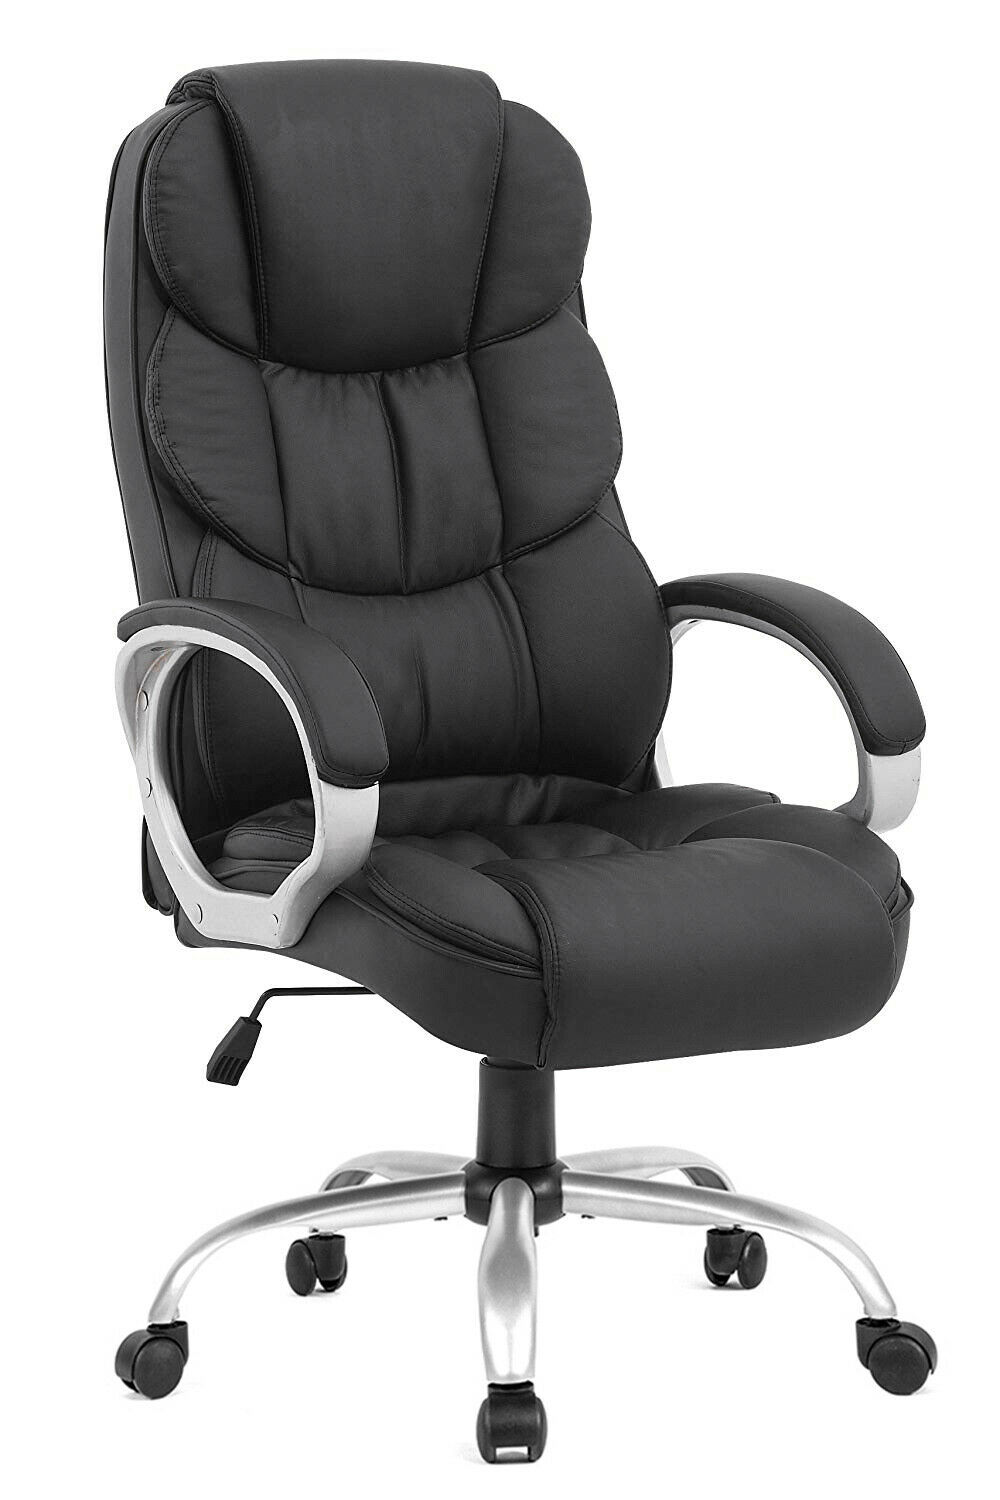 Details About High Back Leather Office Chair Executive Office Desk Task Computer Chair